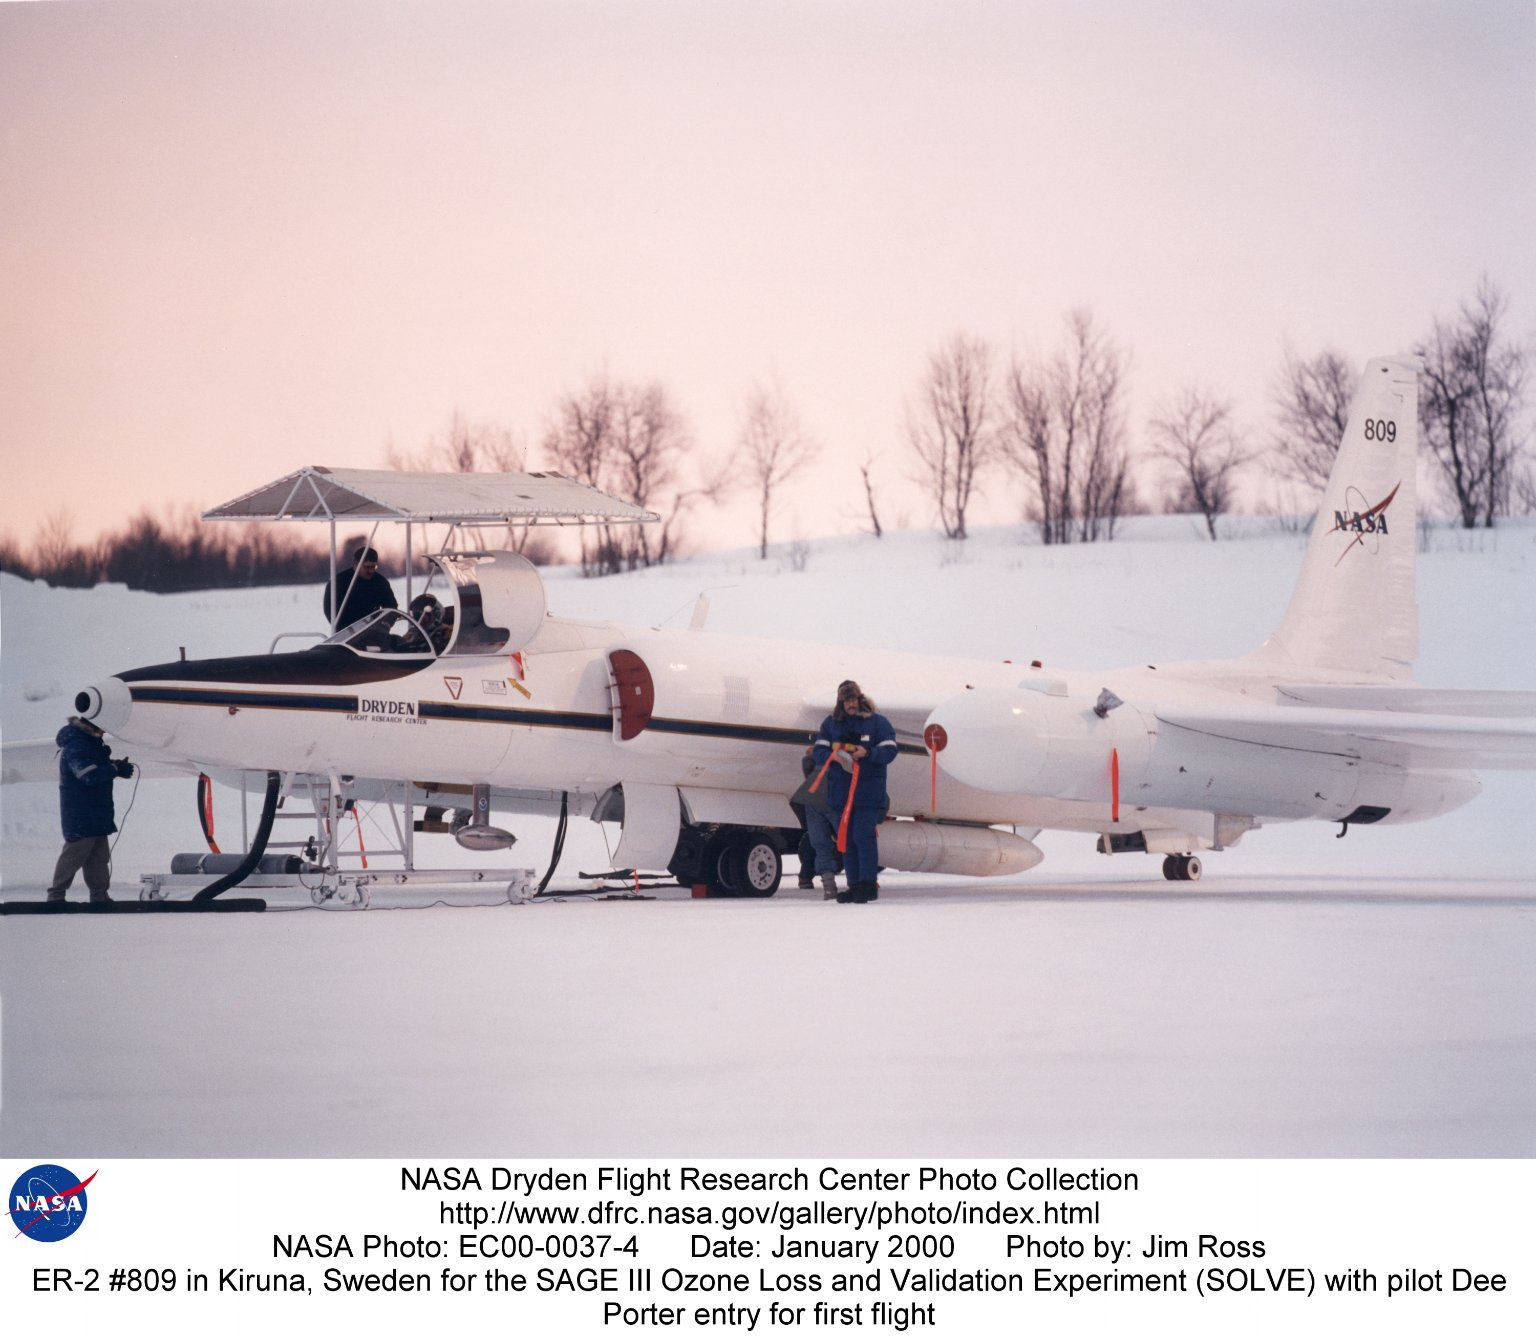 ER-2 #809 in Kiruna, Sweden for the SAGE III Ozone Loss and Validation Experiment (SOLVE) with pilot